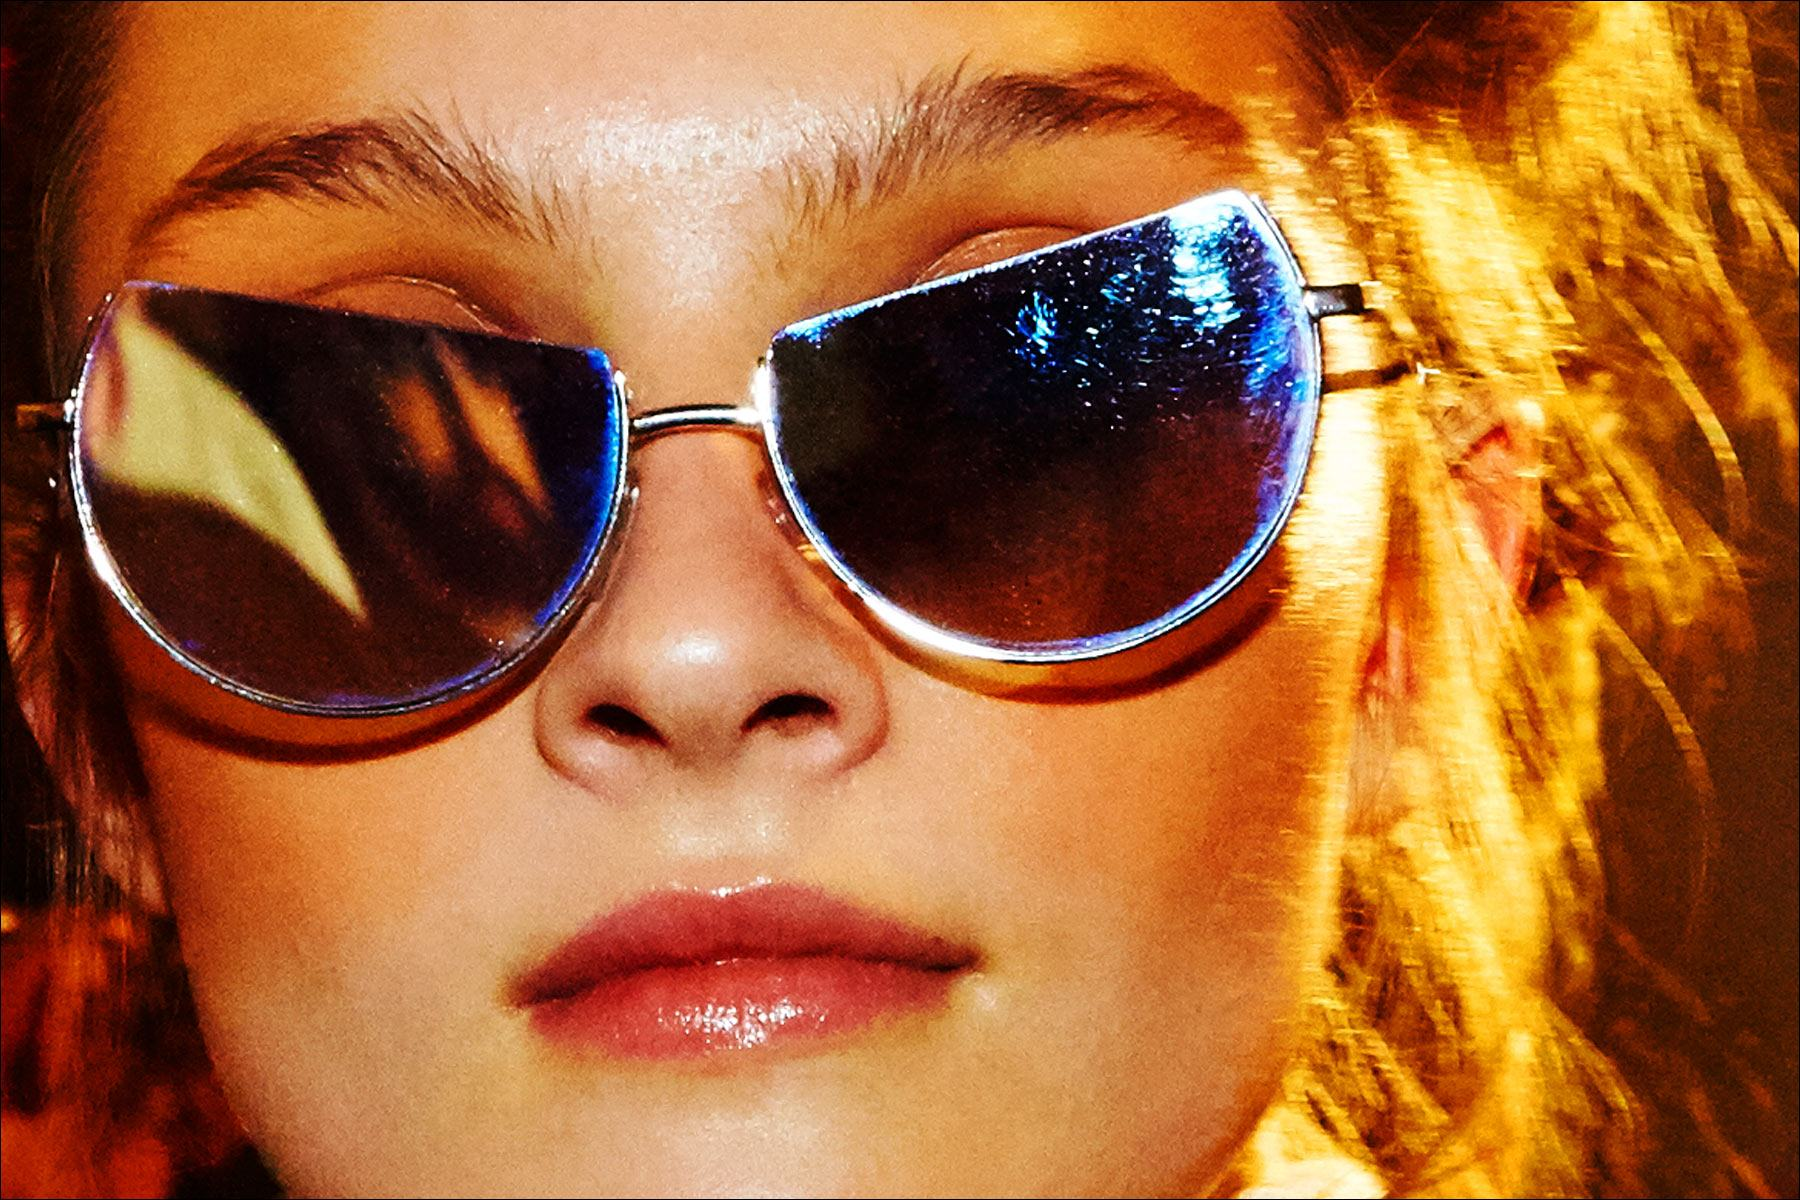 The latest in sunglasses from New York City designer Adam Selman. Photography by Alexander Thompson for Ponyboy magazine NY.